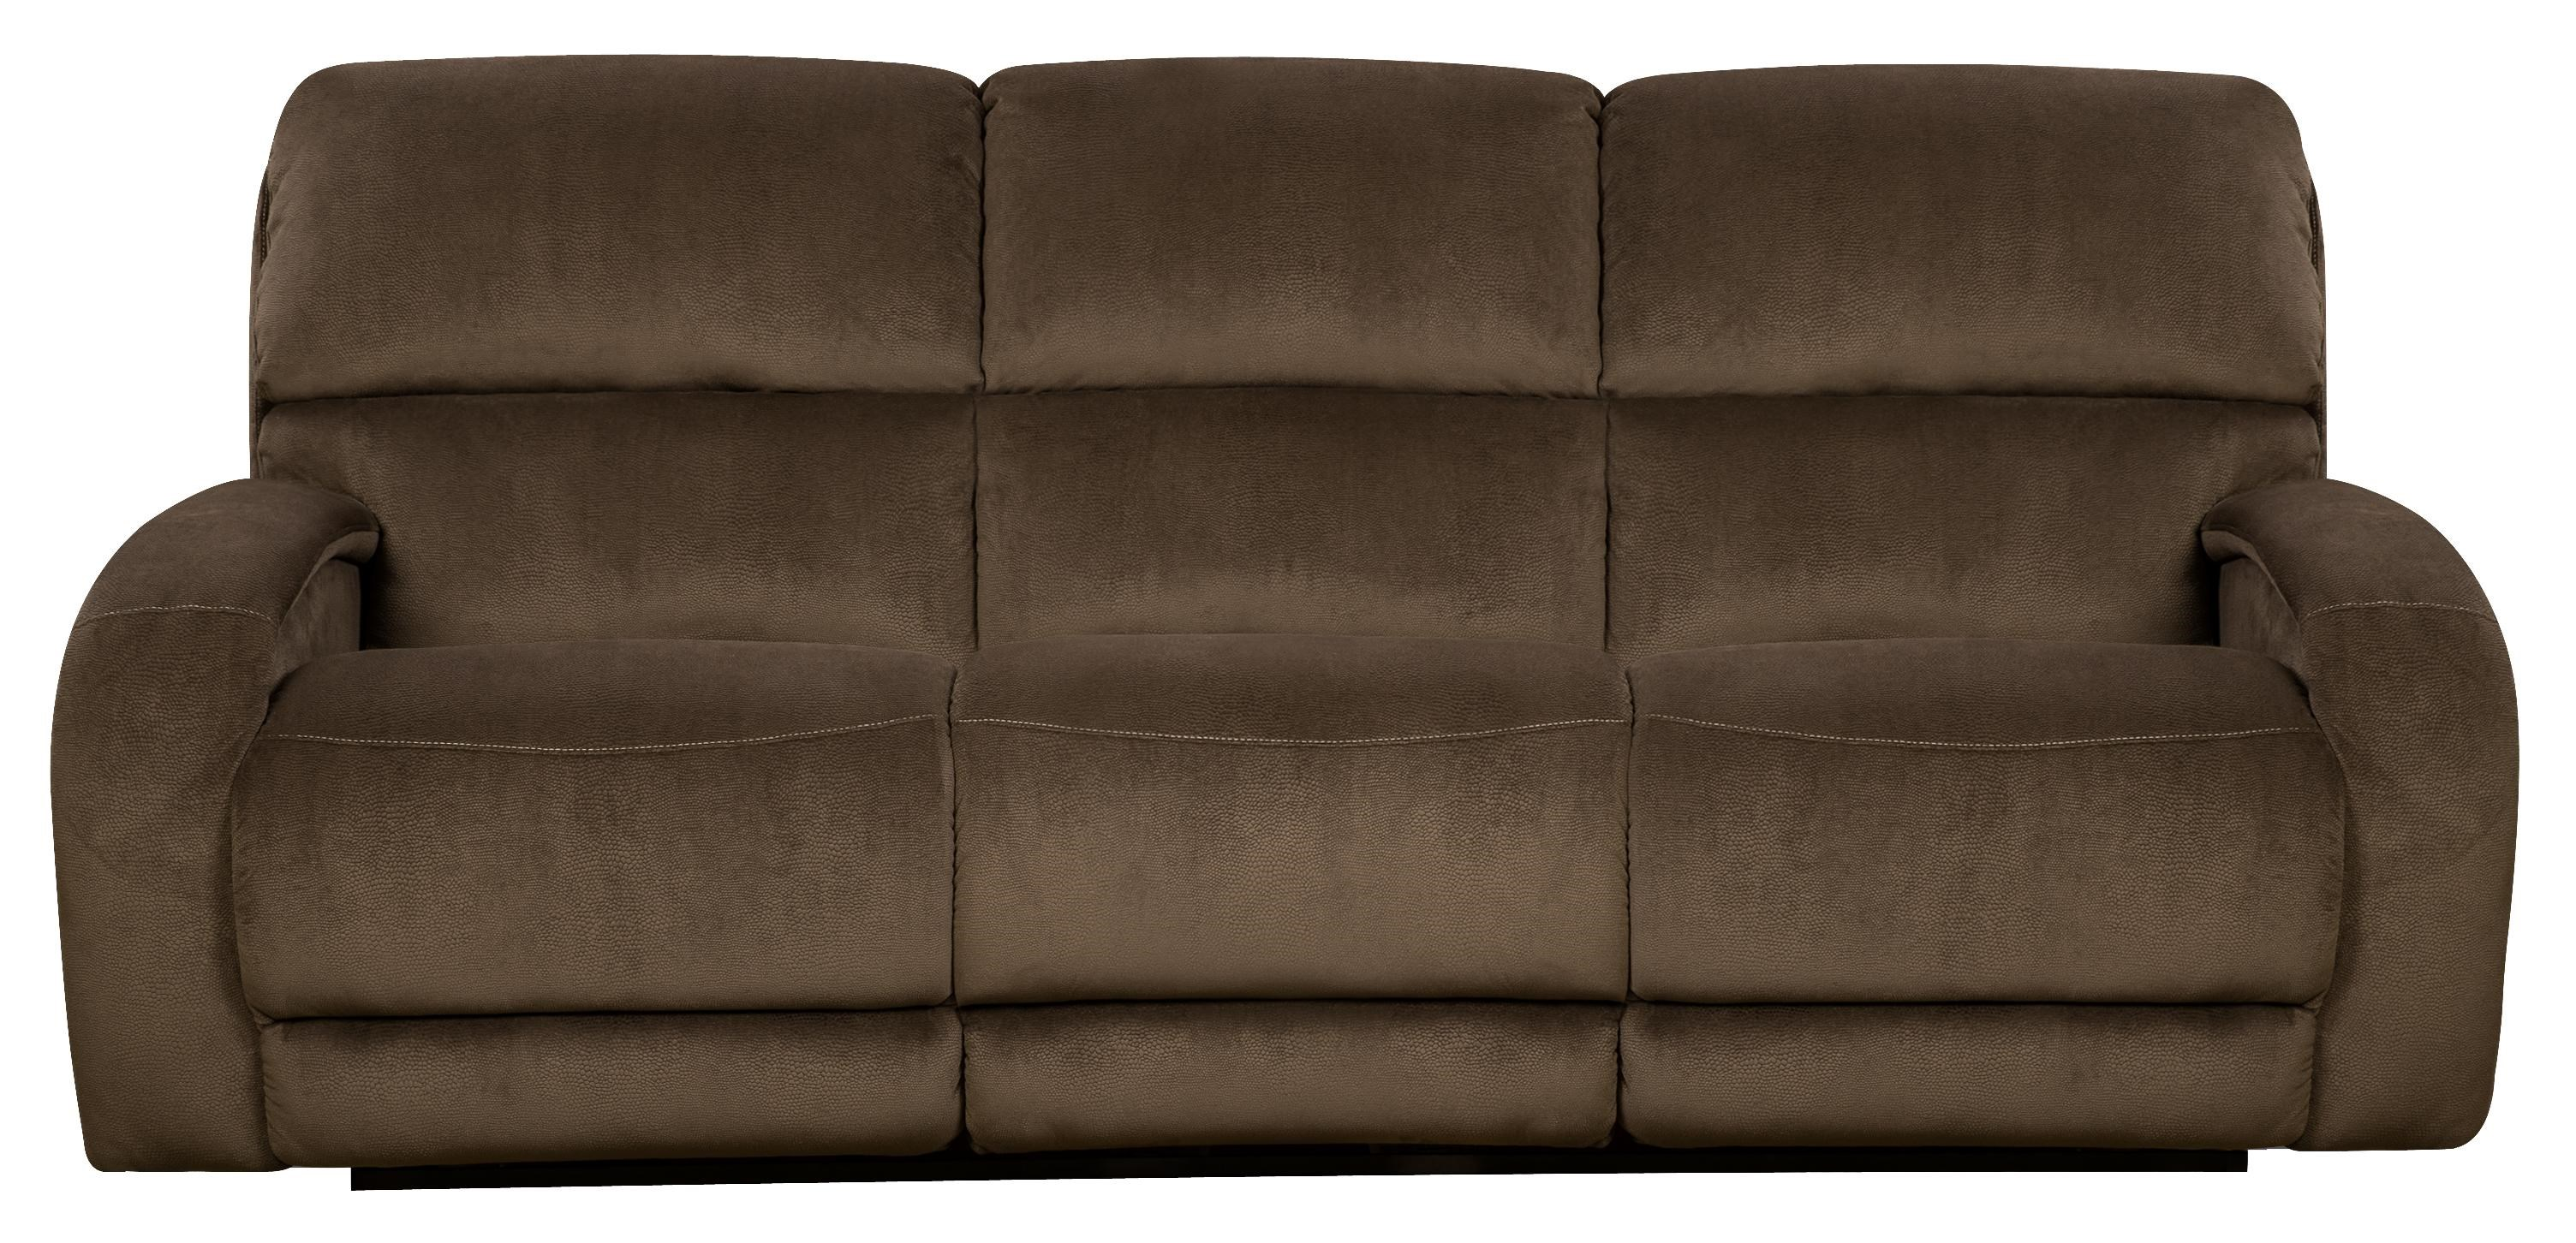 Gentil Southern Motion Fandango 884 Reclining Sofa With Casual Style For Family  Rooms